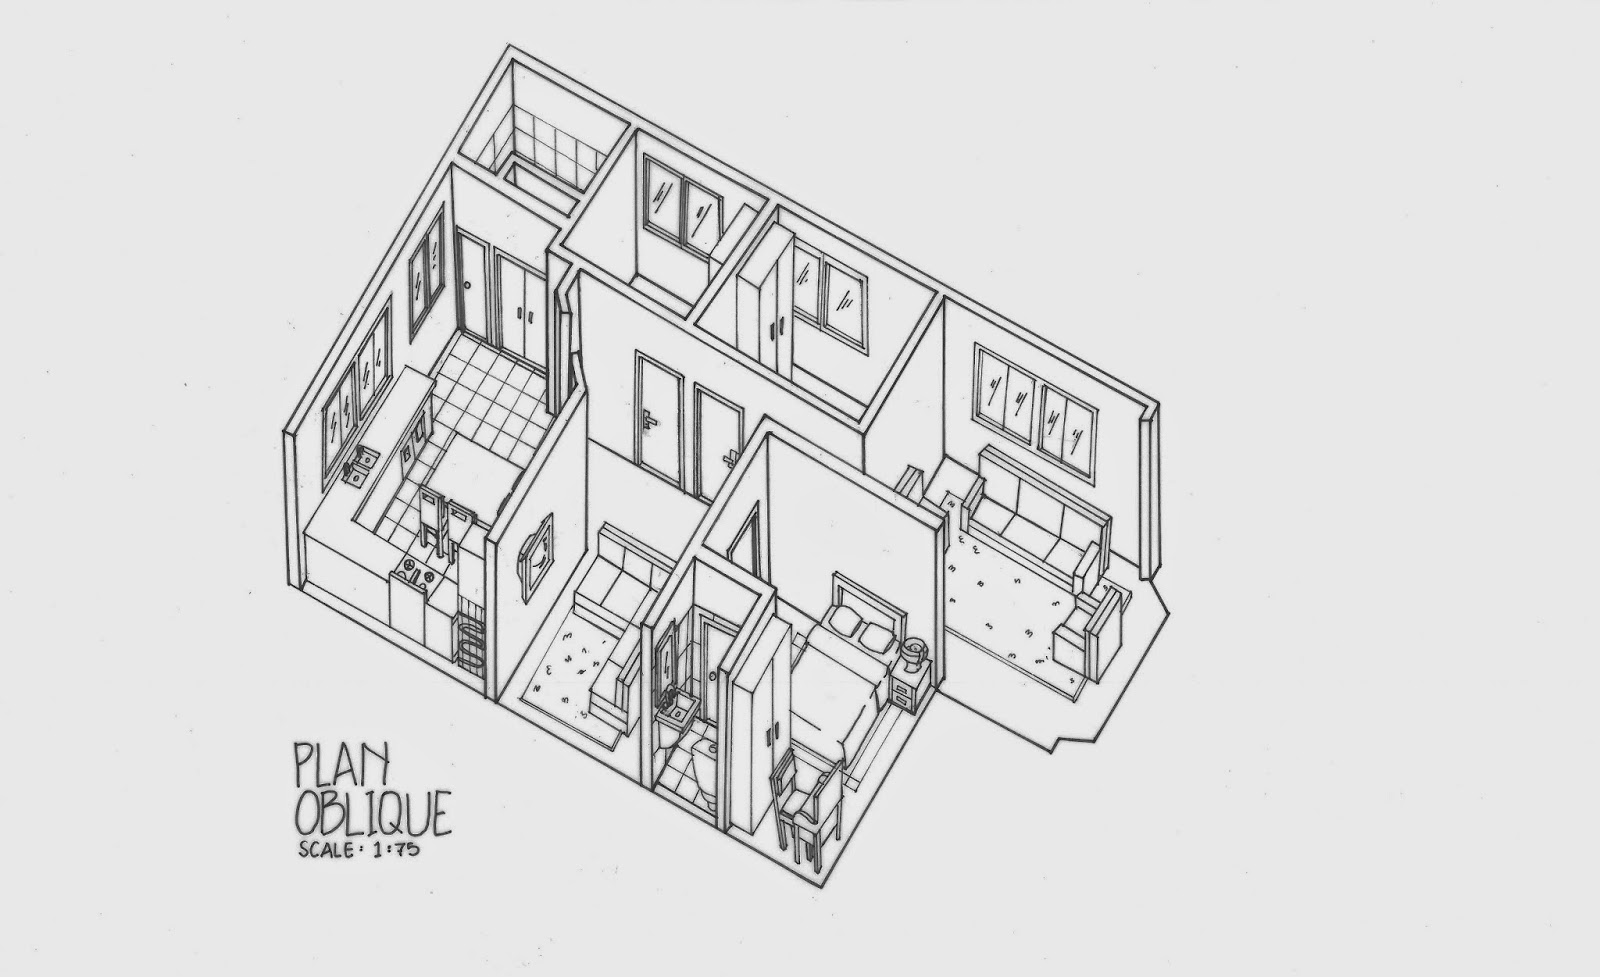 Drawn building isometric Technical in An 2) Plan